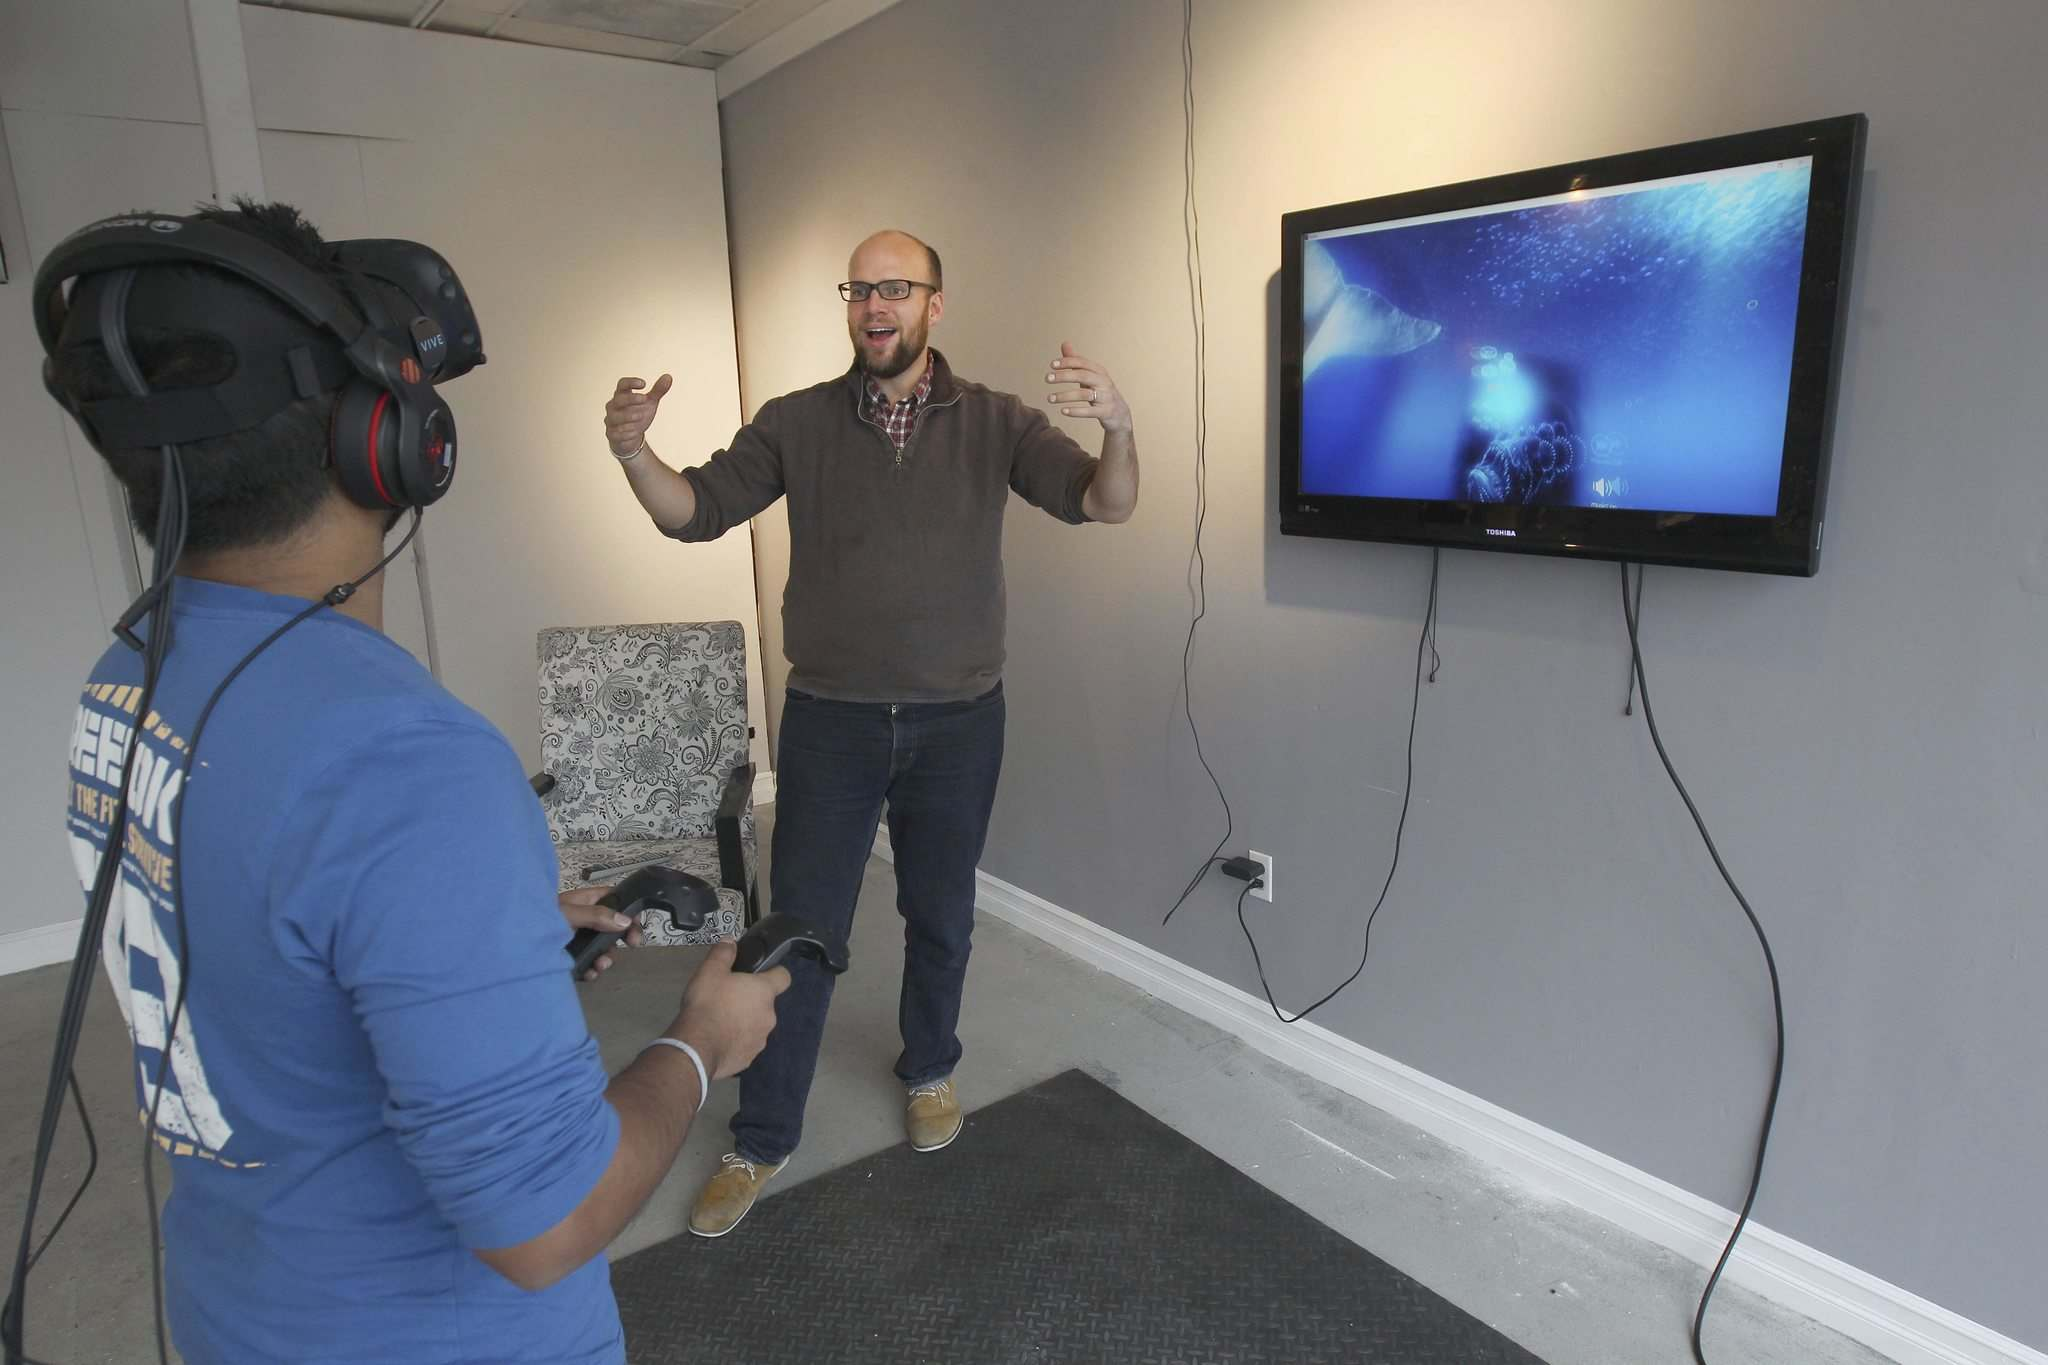 JOE BRYKSA / WINNIPEG FREE PRESS</p><p>Charith Jayawardana, Left, tries out Winnipeg's first Virtual Reality Arcade at The Portal with the help of owner Chris Hall.</p>